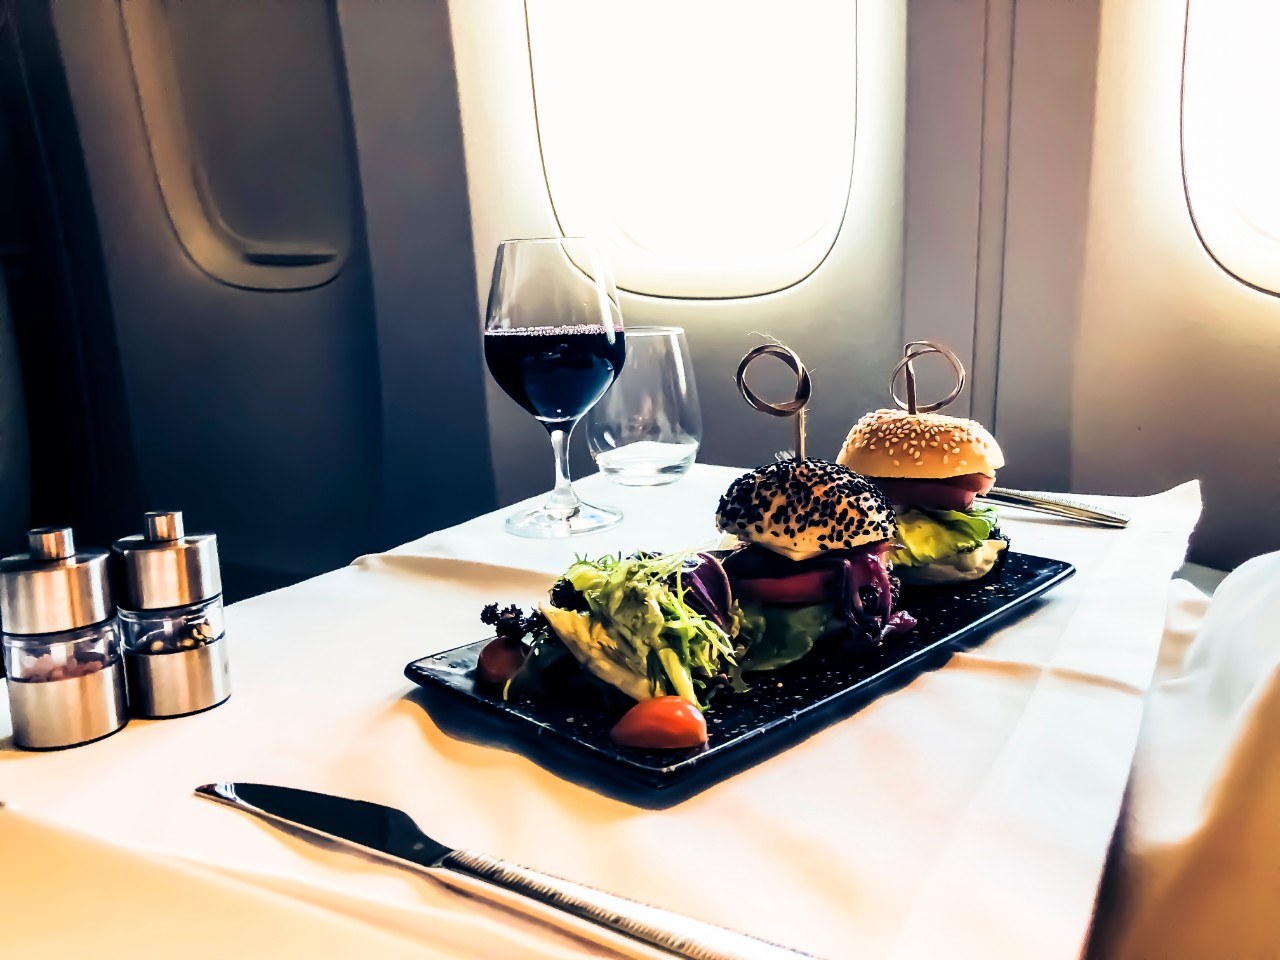 Luxury food served on an aircraft with a glass of wine and metal cutlery